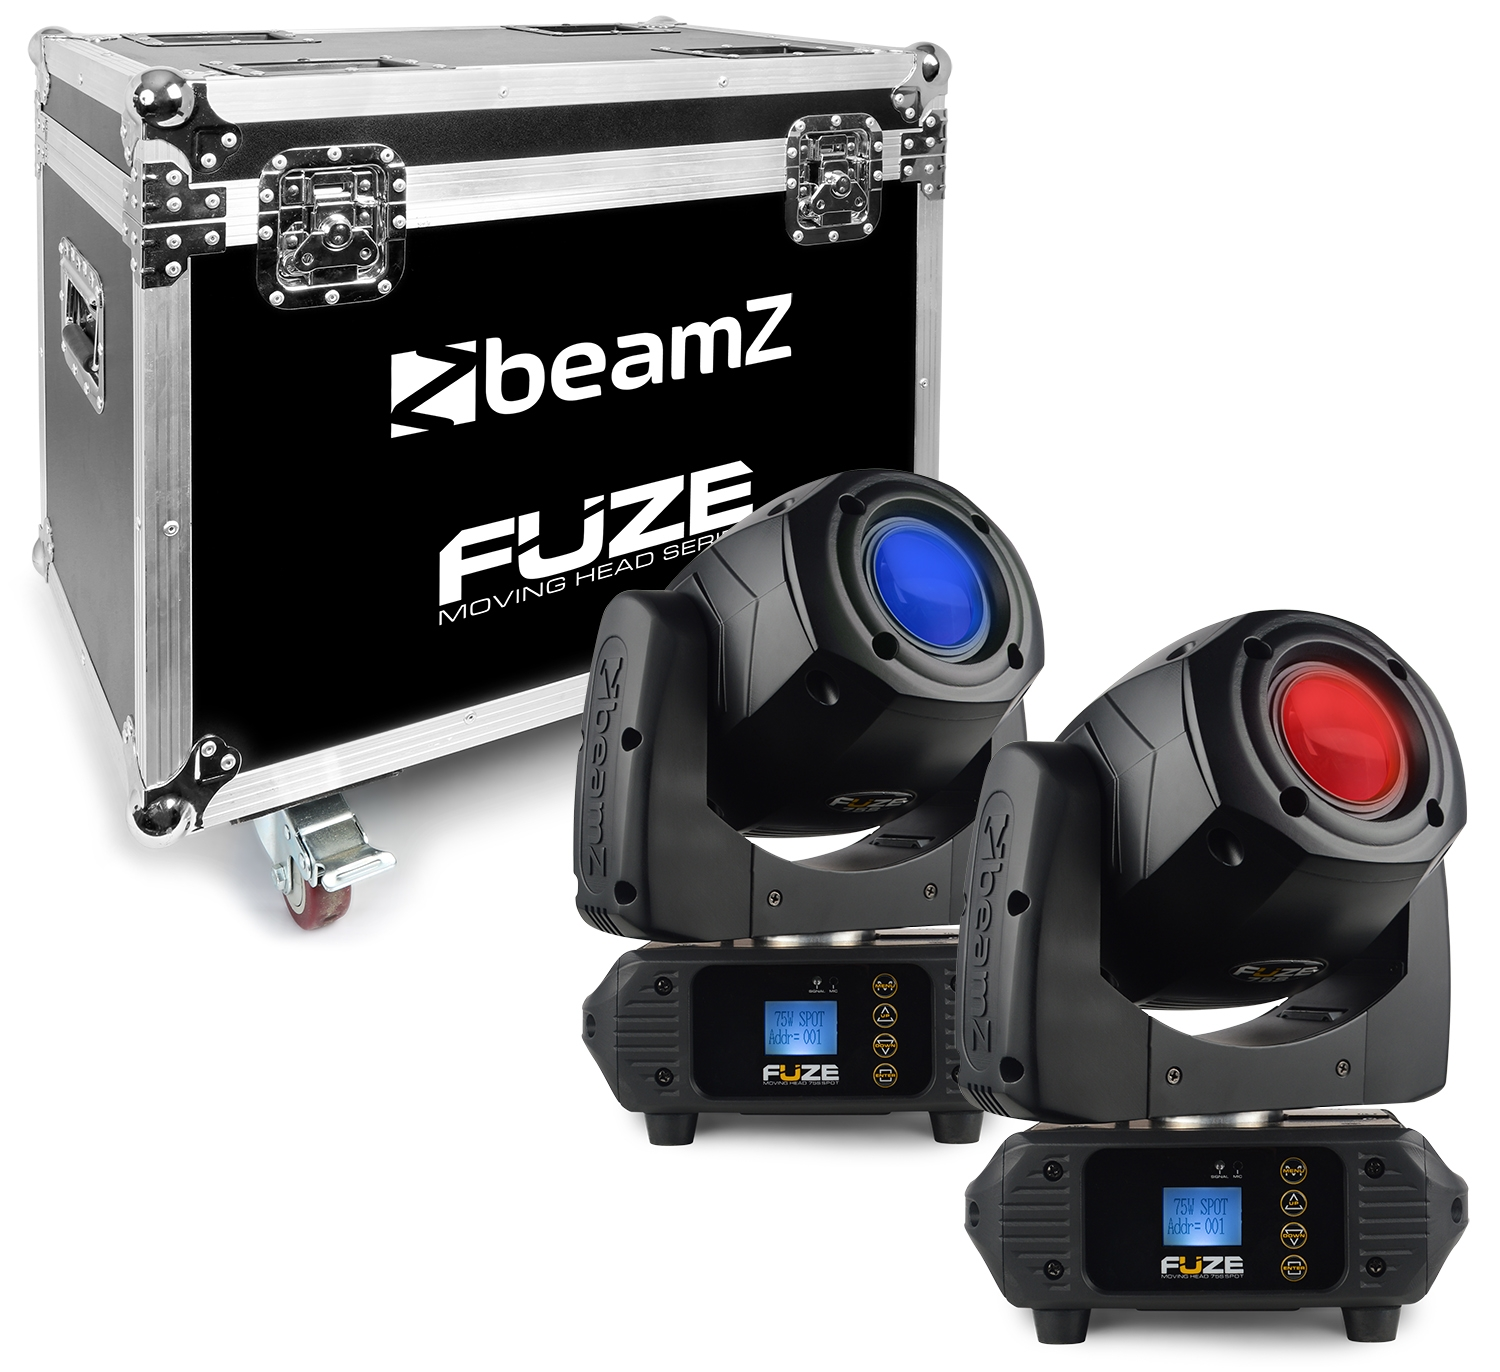 BeamZ Fuze 75S Spot 75W LED Moving Head Sada 2ks s přepravním casem